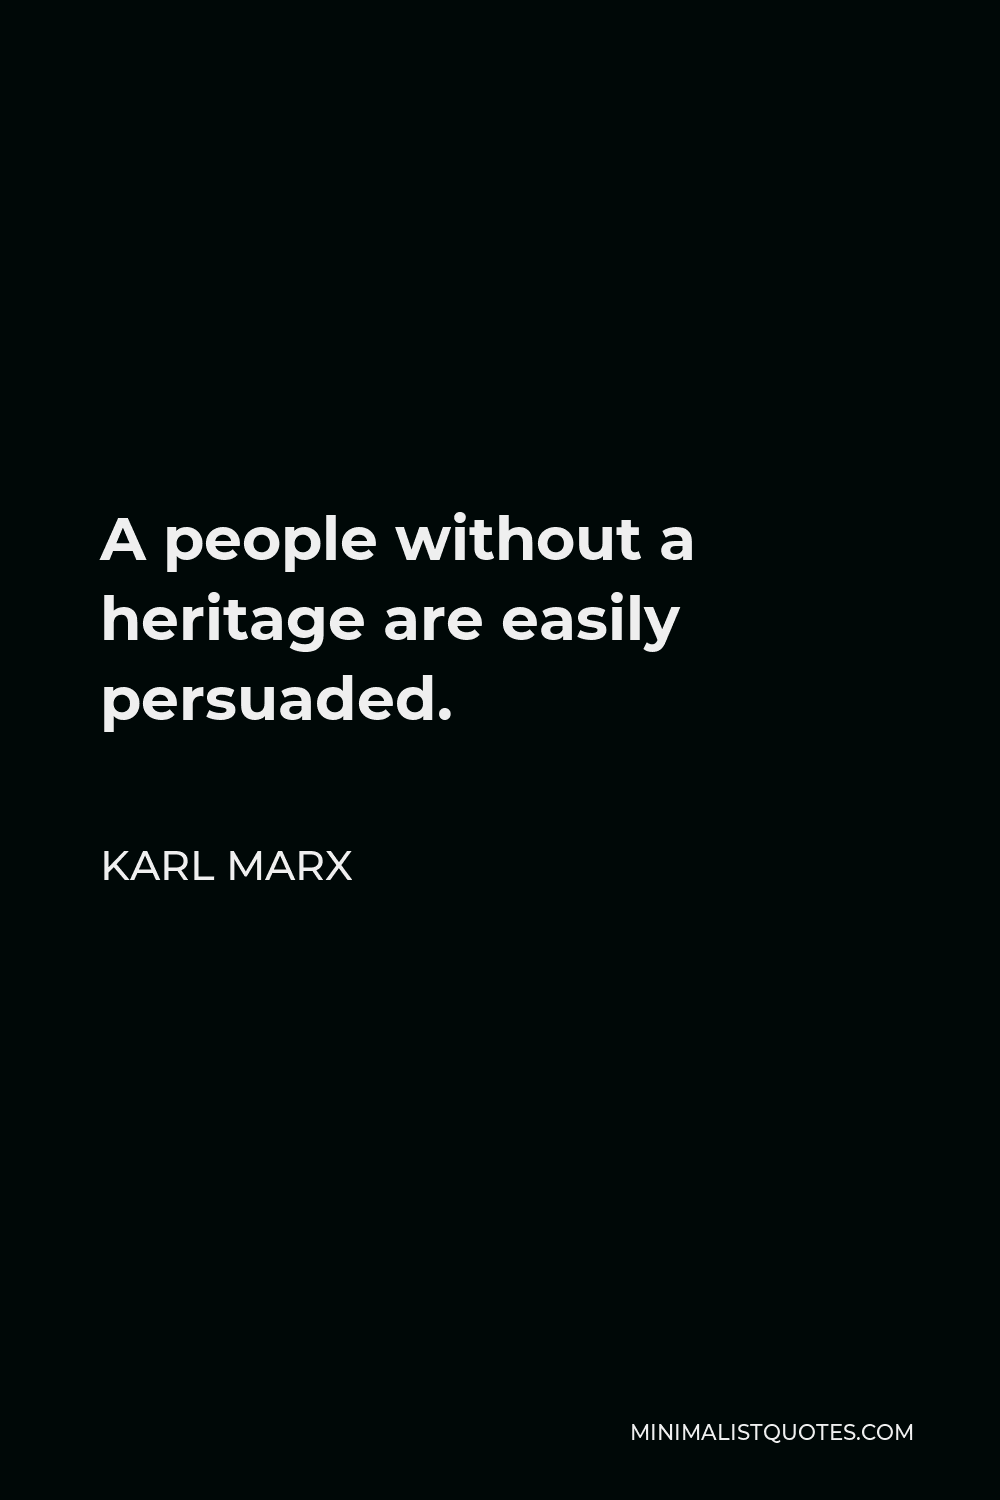 Karl Marx Quote - A people without a heritage are easily persuaded.